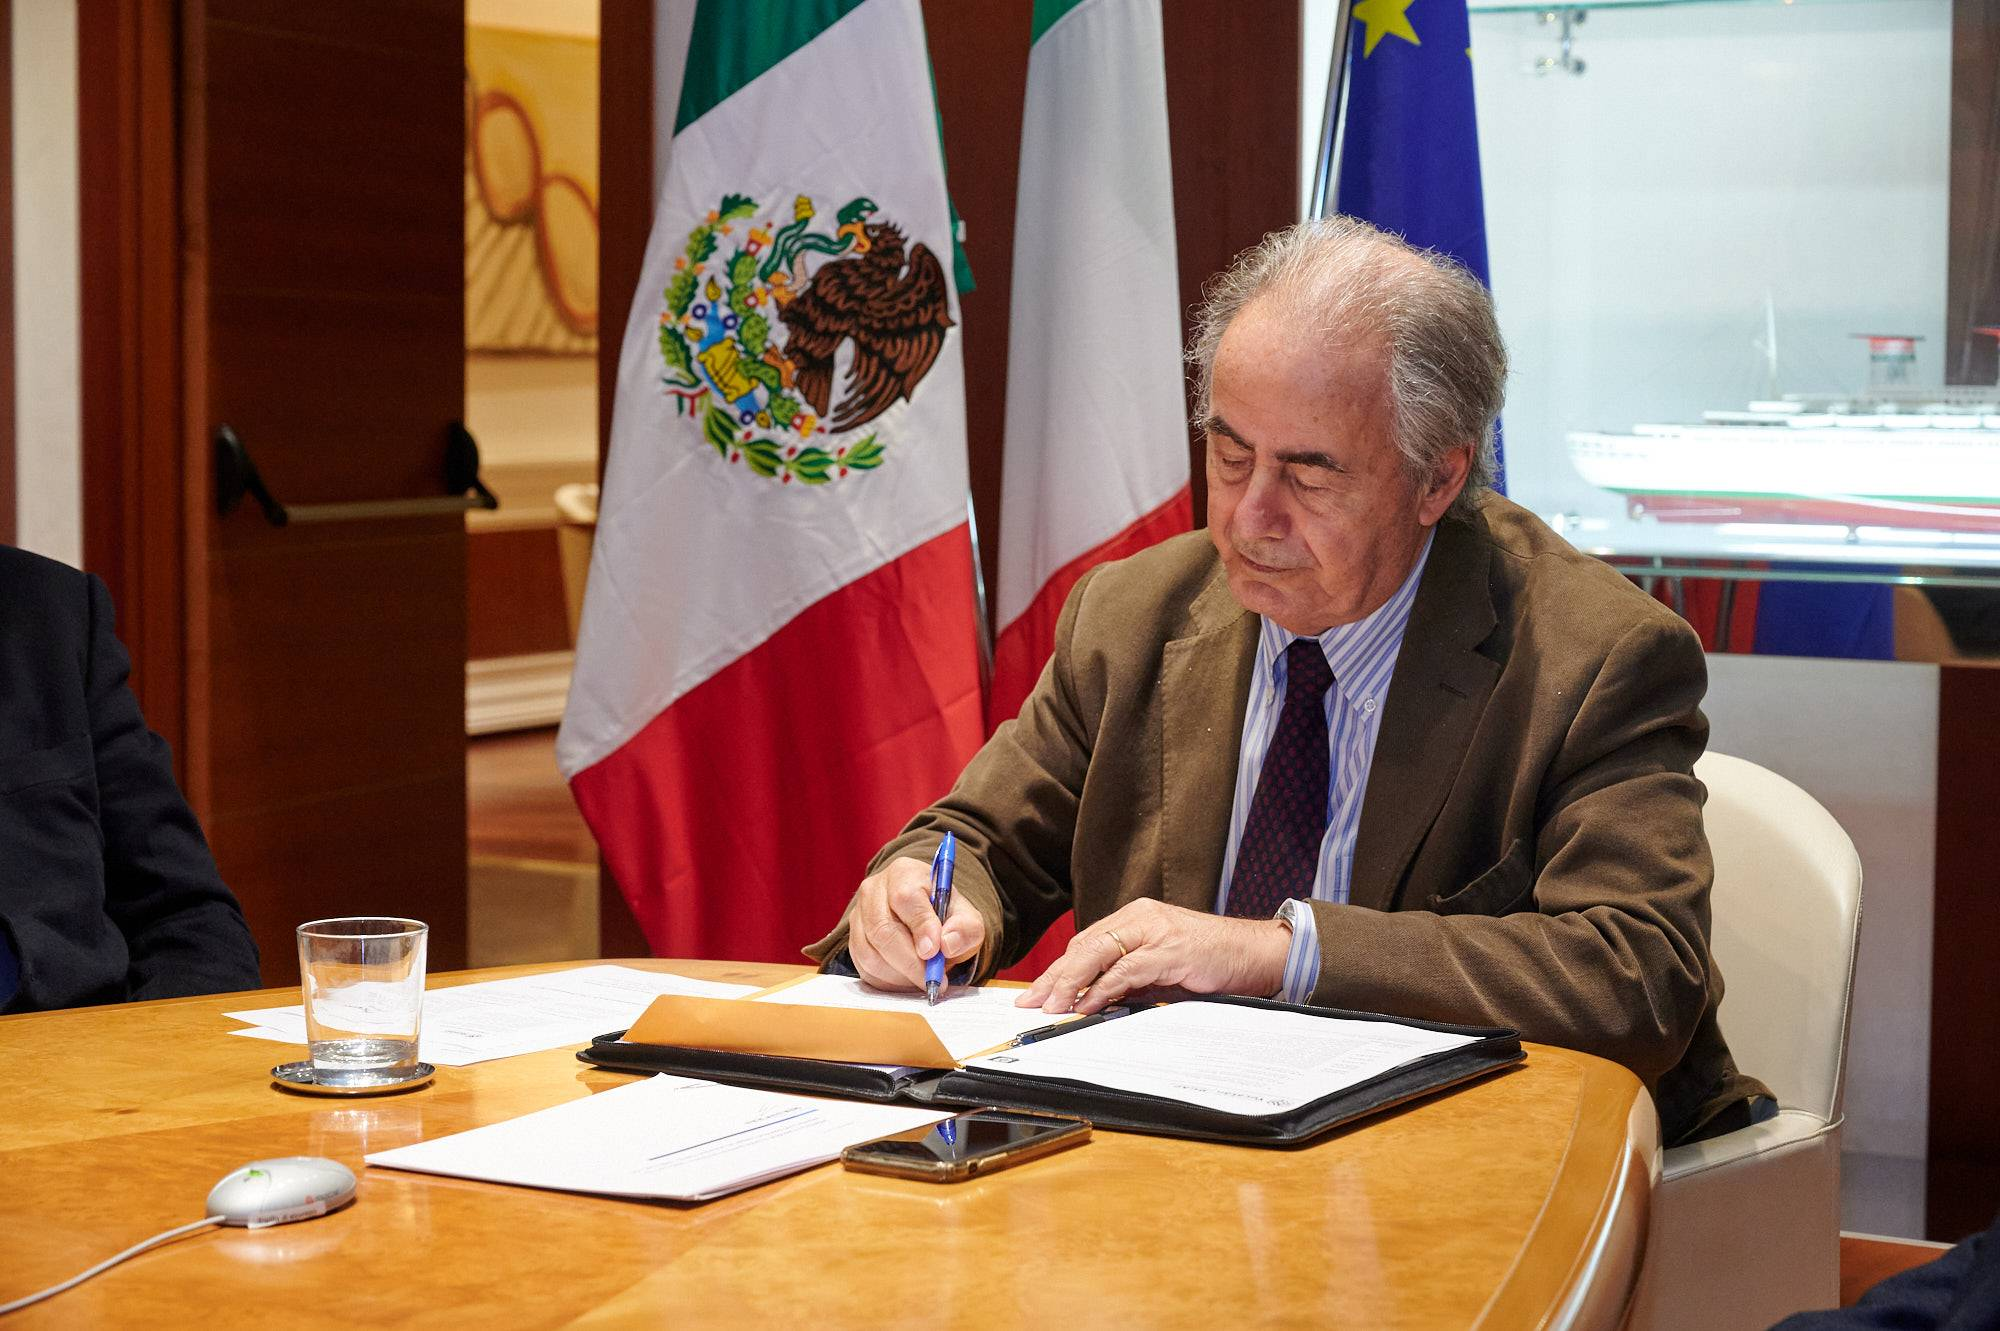 Fincantieri to start repairing ships in Mexico